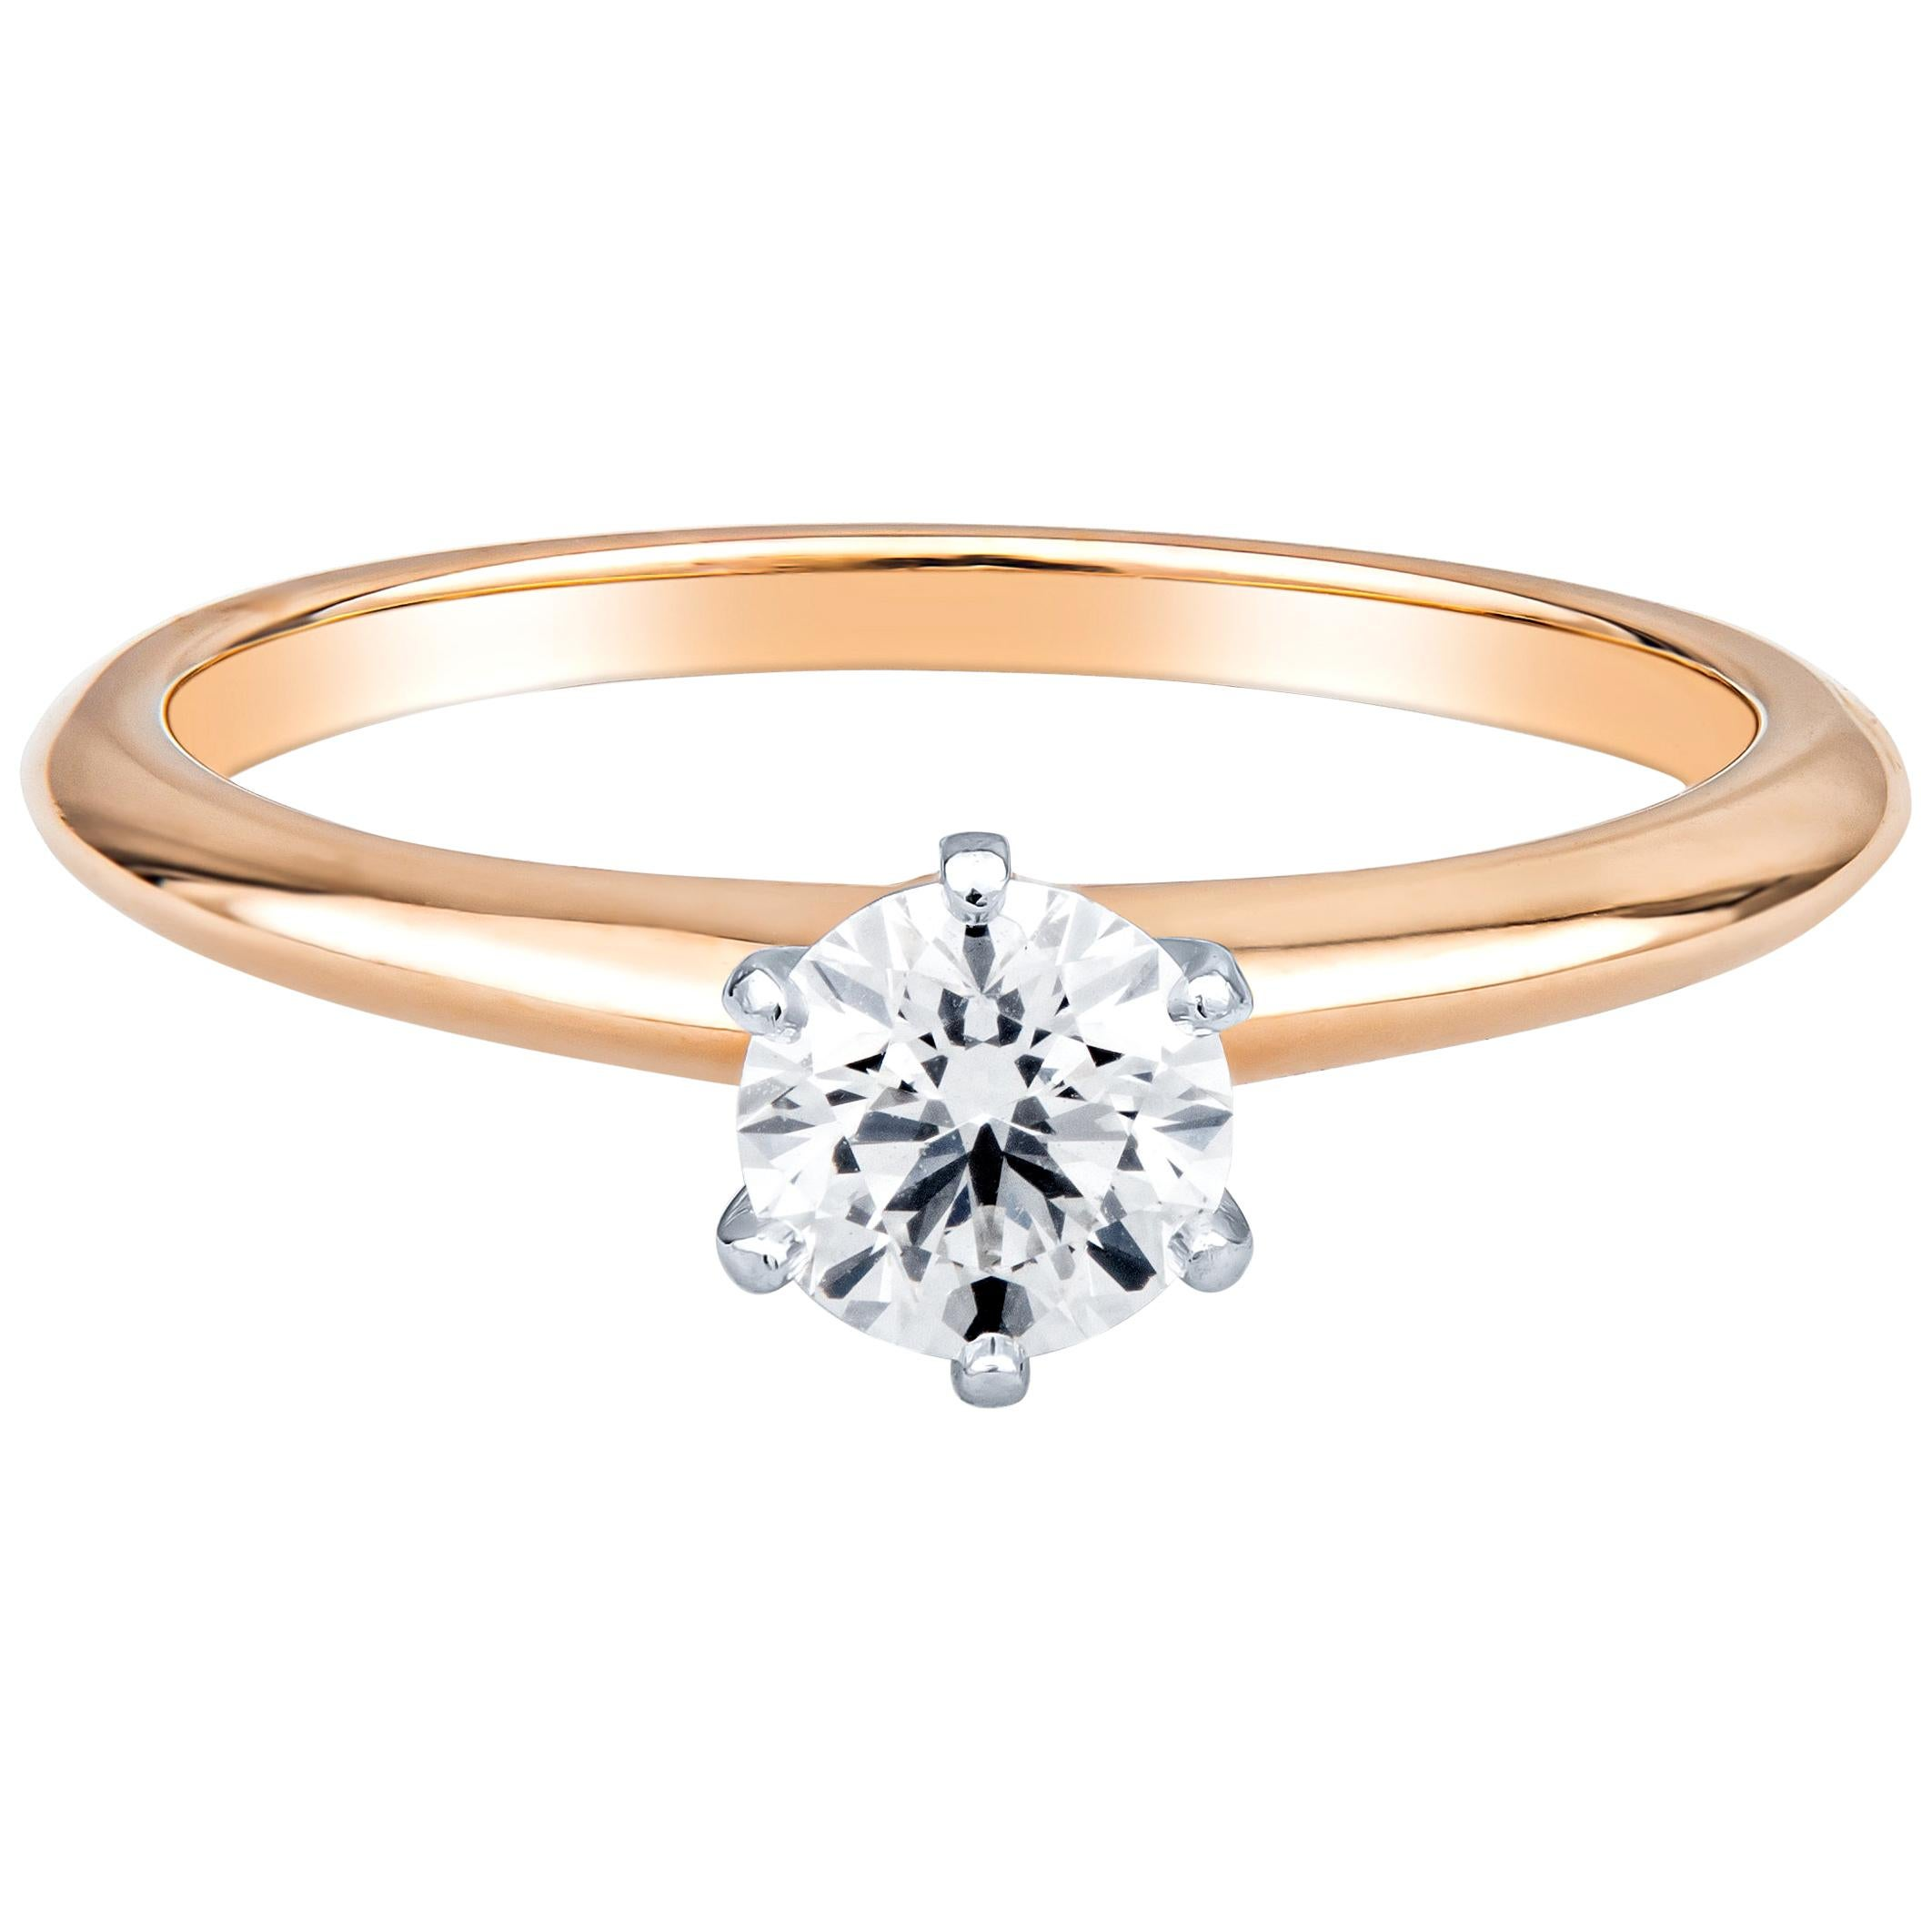 Tiffany & Co. 0.57ct Round I VS1 Diamond Solitaire Engagement Ring, 18kt Rose